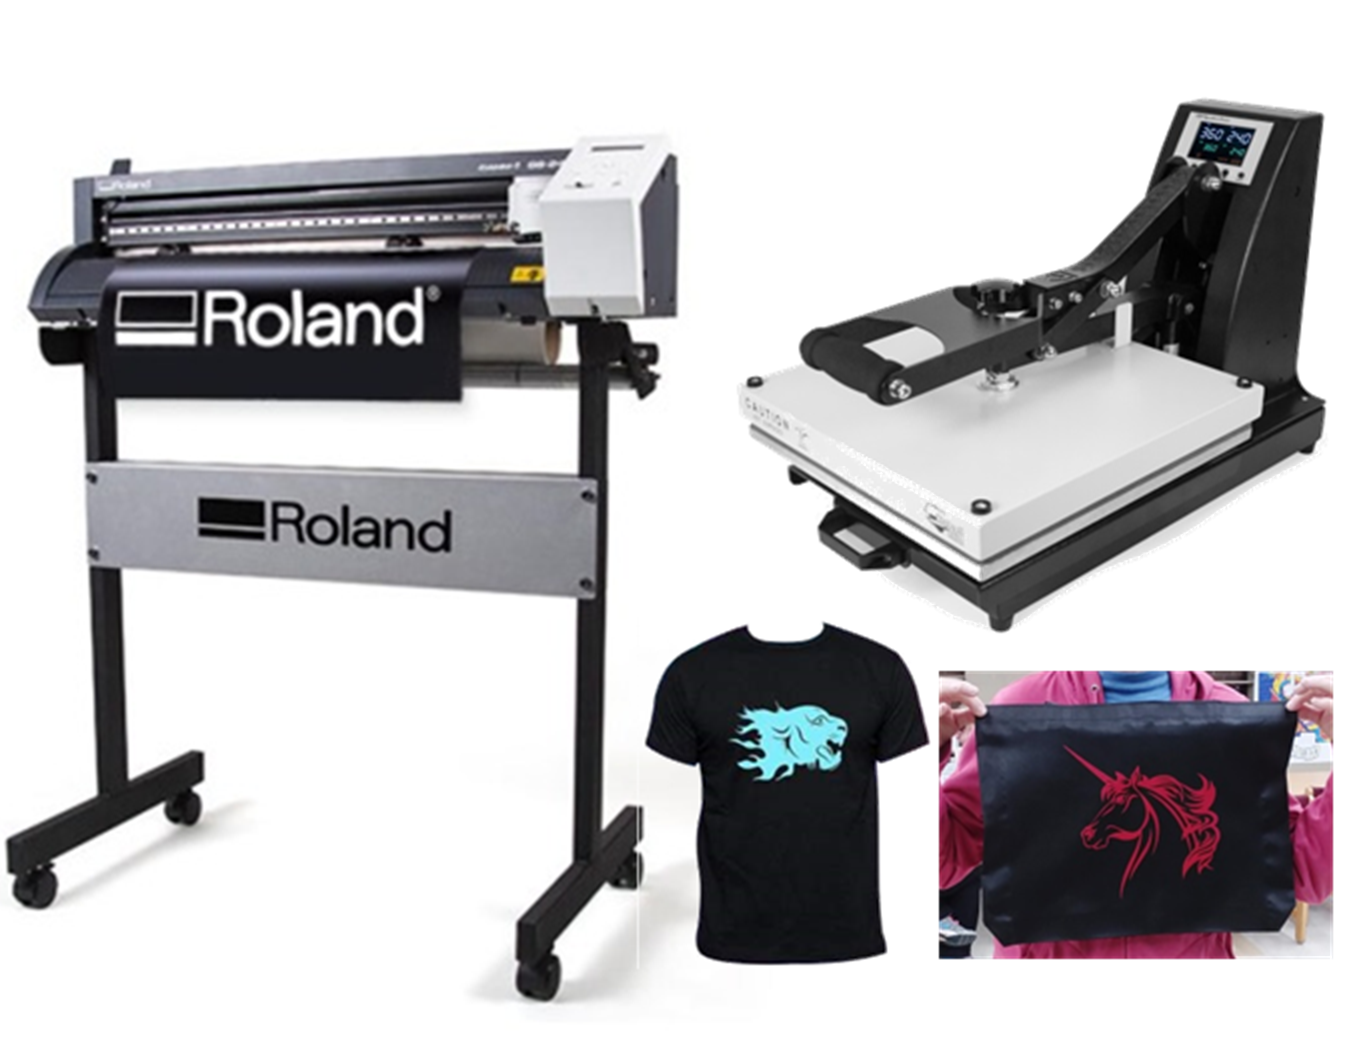 Learn & Make in the Quad: Vinyl Cutter & Clamshell Heat Press